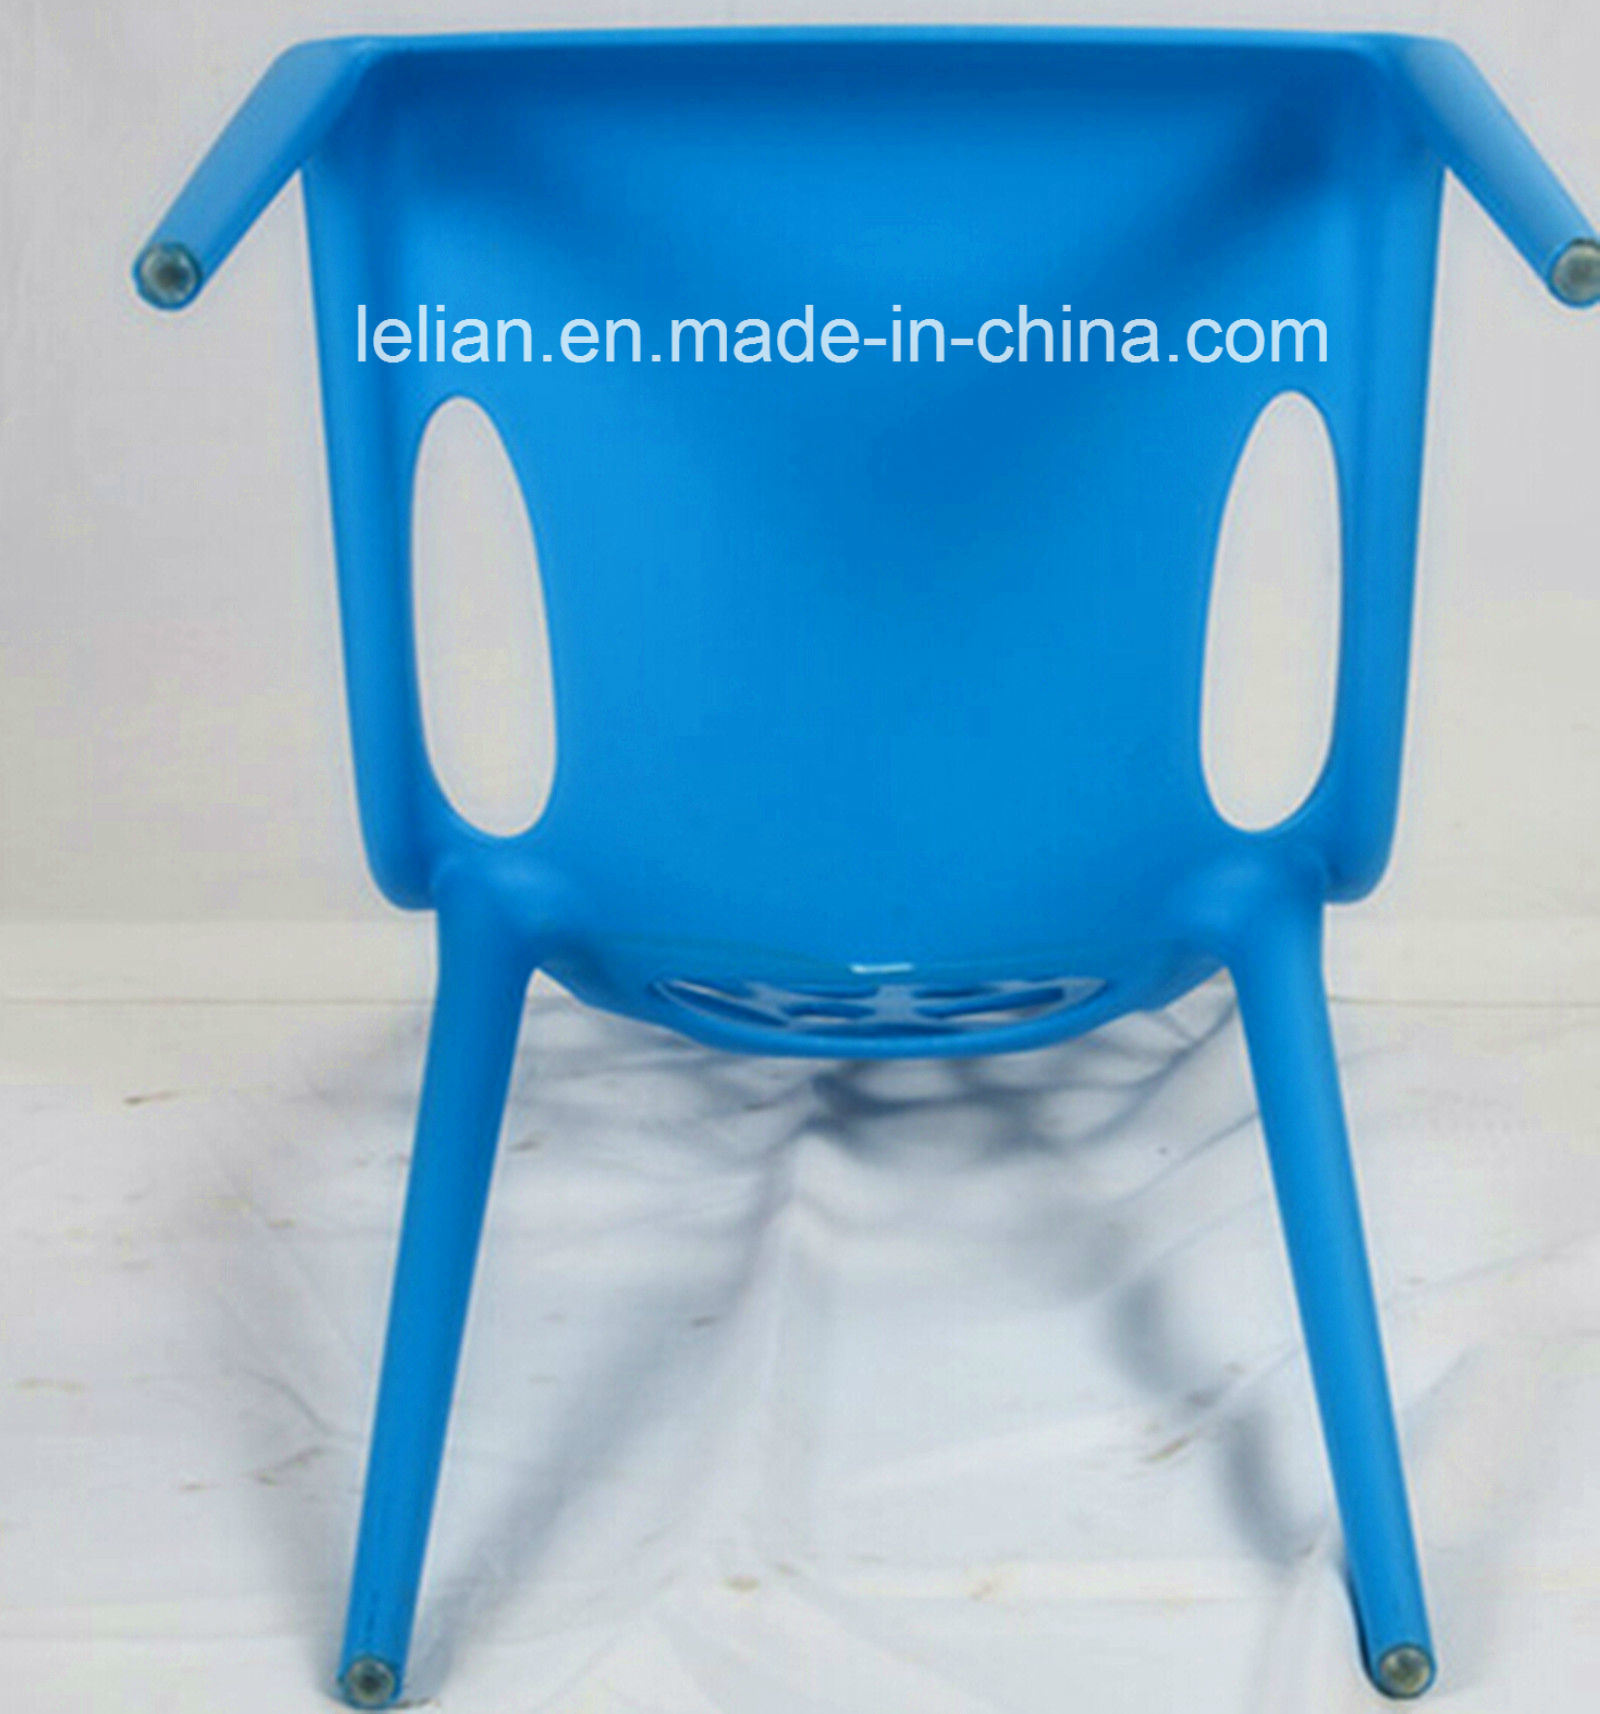 China Whole Pp Moulded Chair For Outdoor Auditorium And Garden